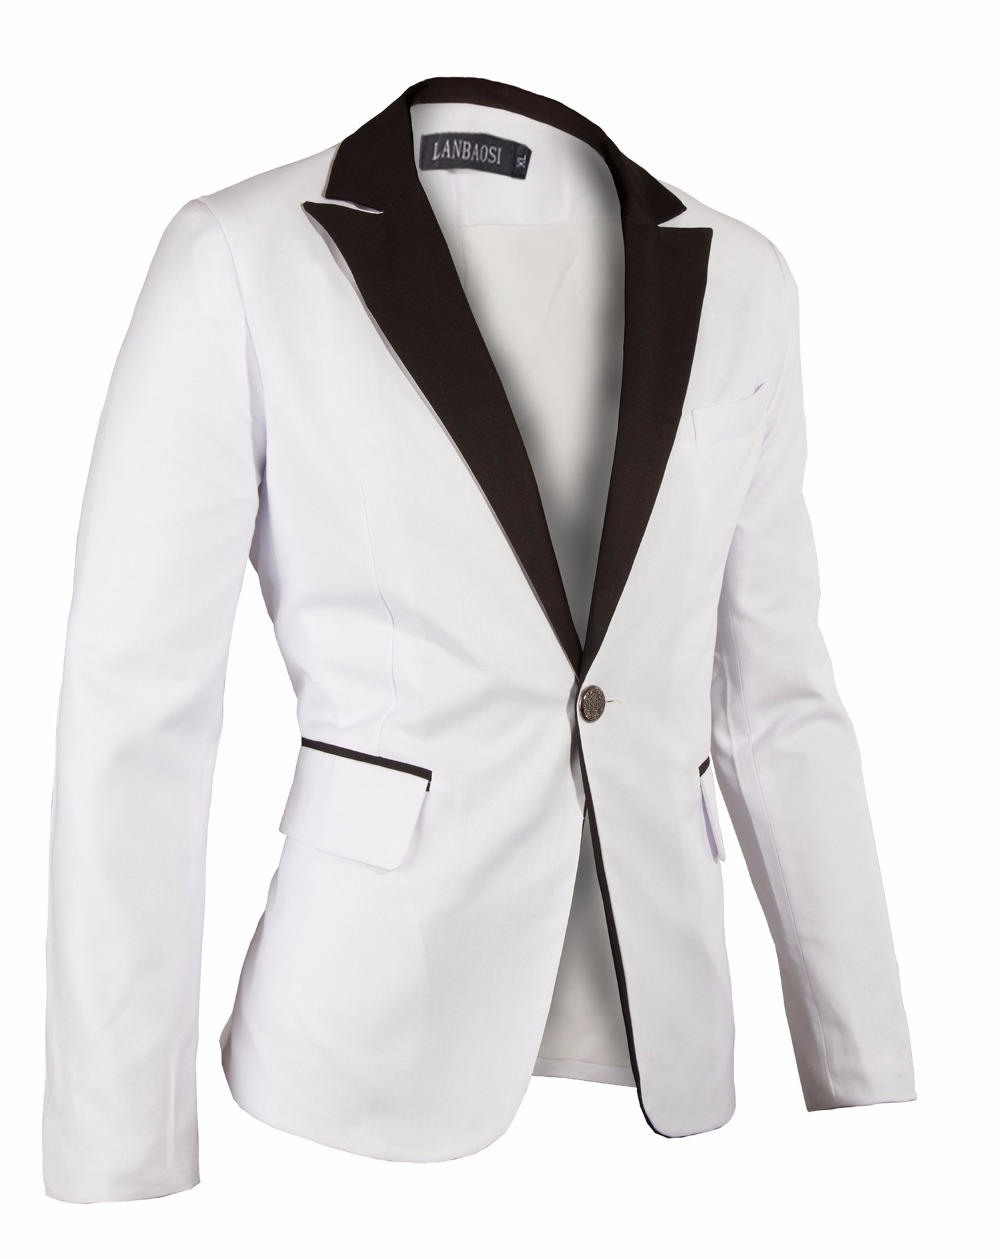 White stylish blazer for men forecast dress in spring in 2019